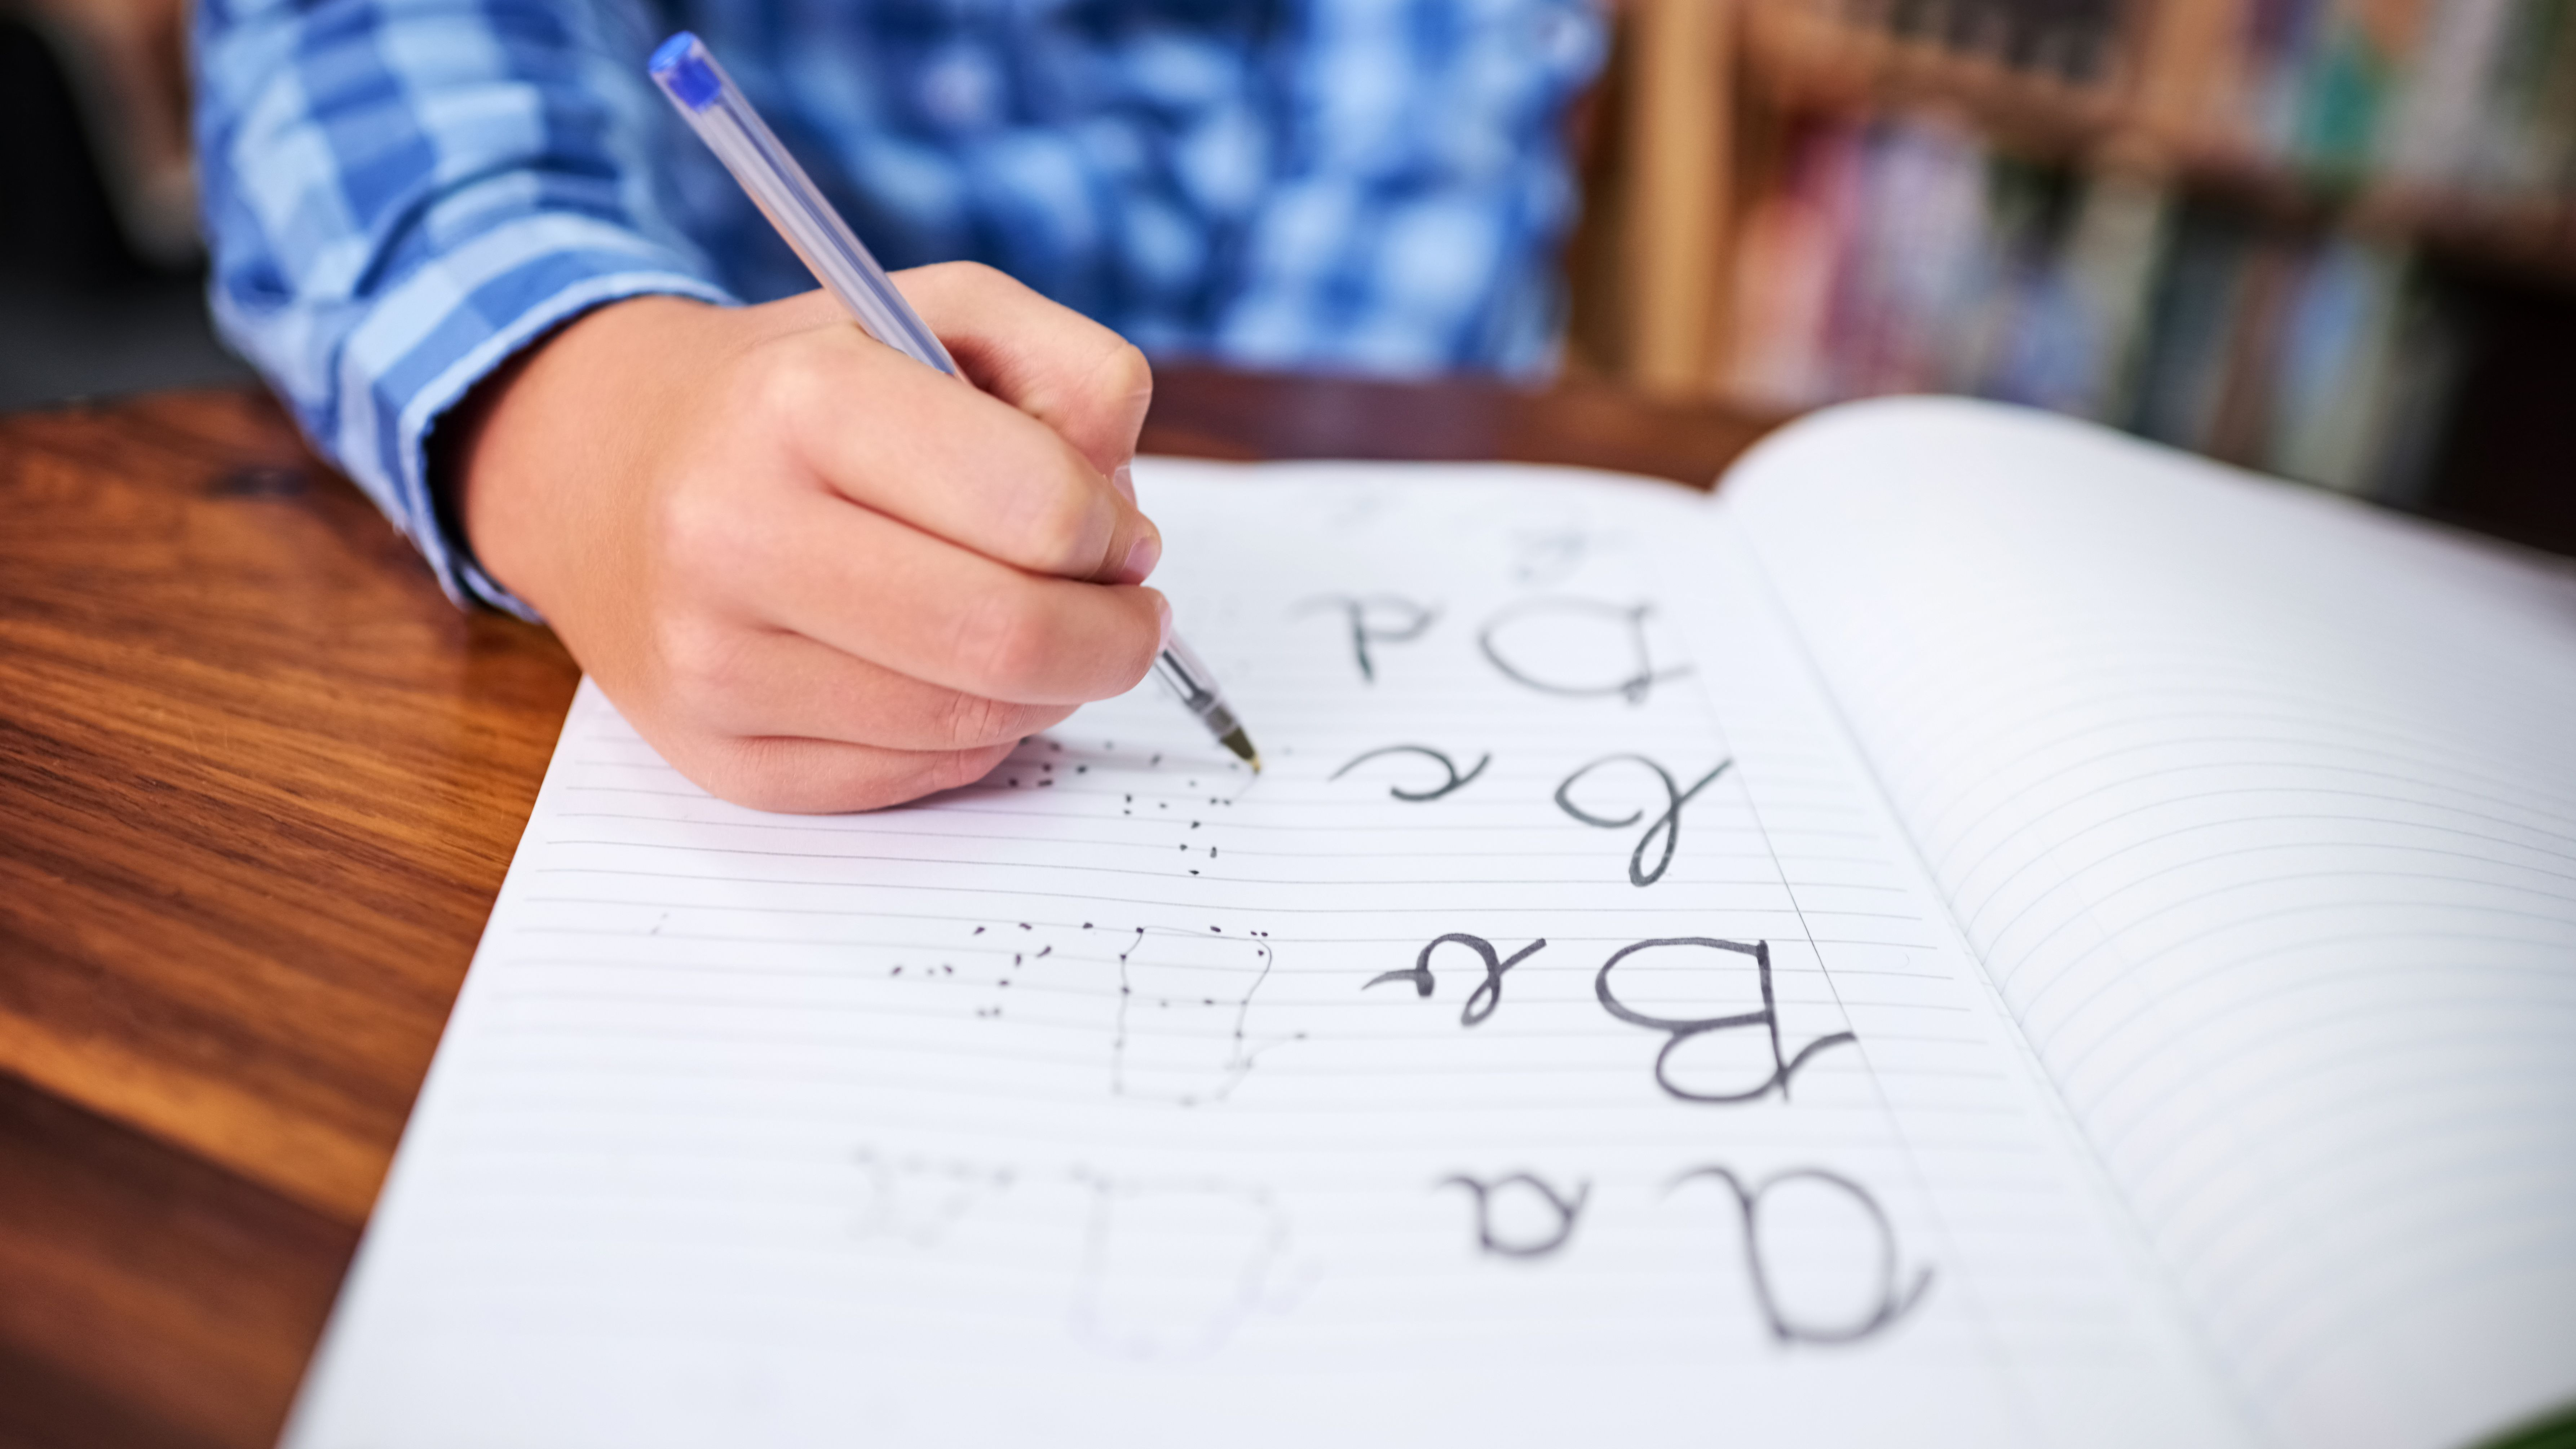 Letter Recognition For Special Education